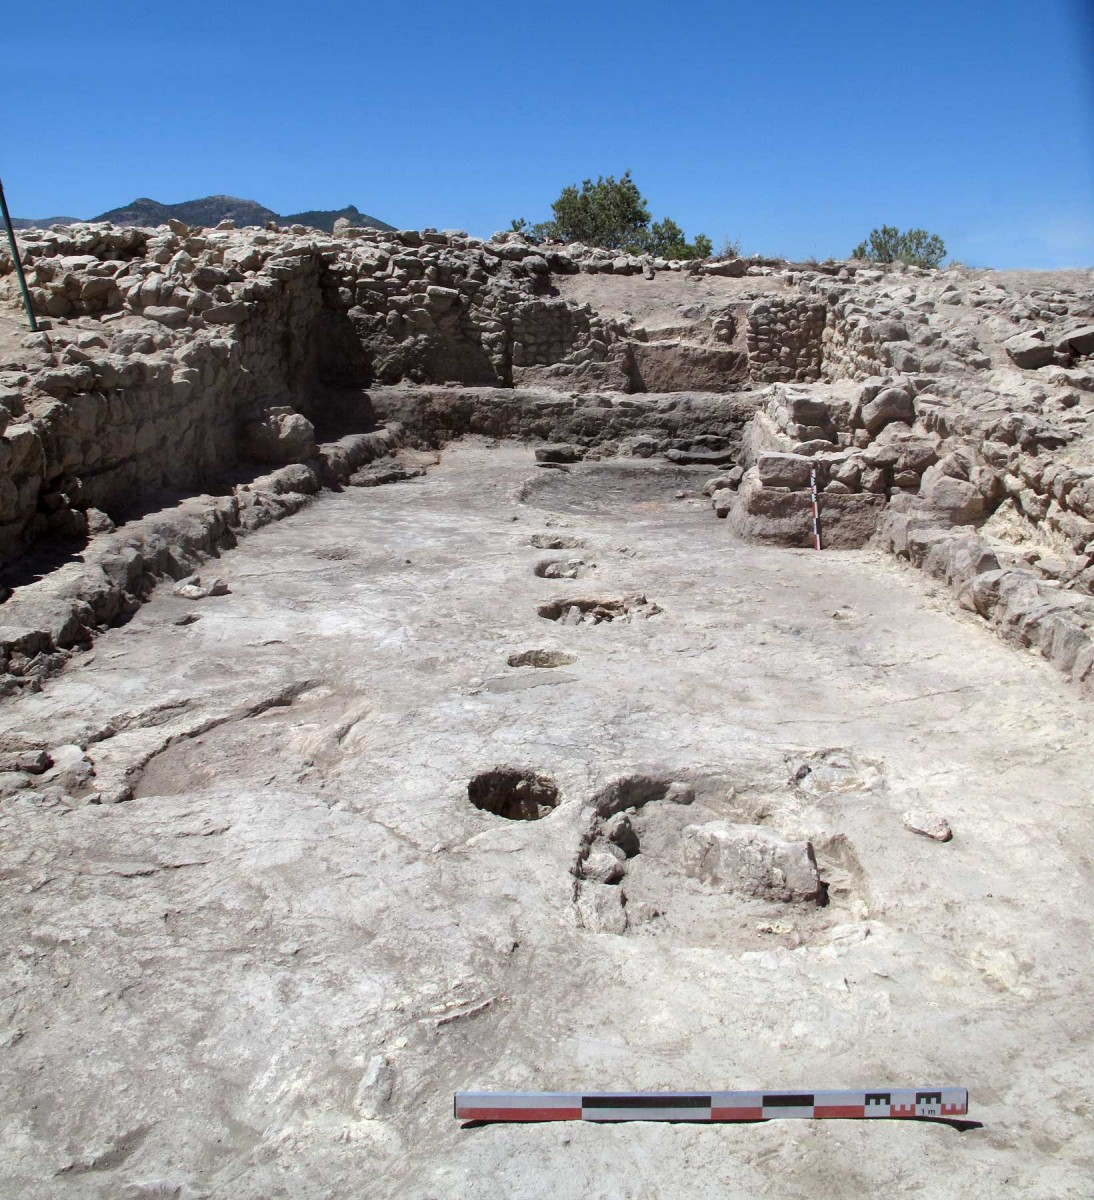 Governing hall at La Almoloya. Archaeologists affirm that this is the first time a building specifically designed for political purposes is discovered in Western Europe. Photo credit: Universitat Autònoma de Barcelona